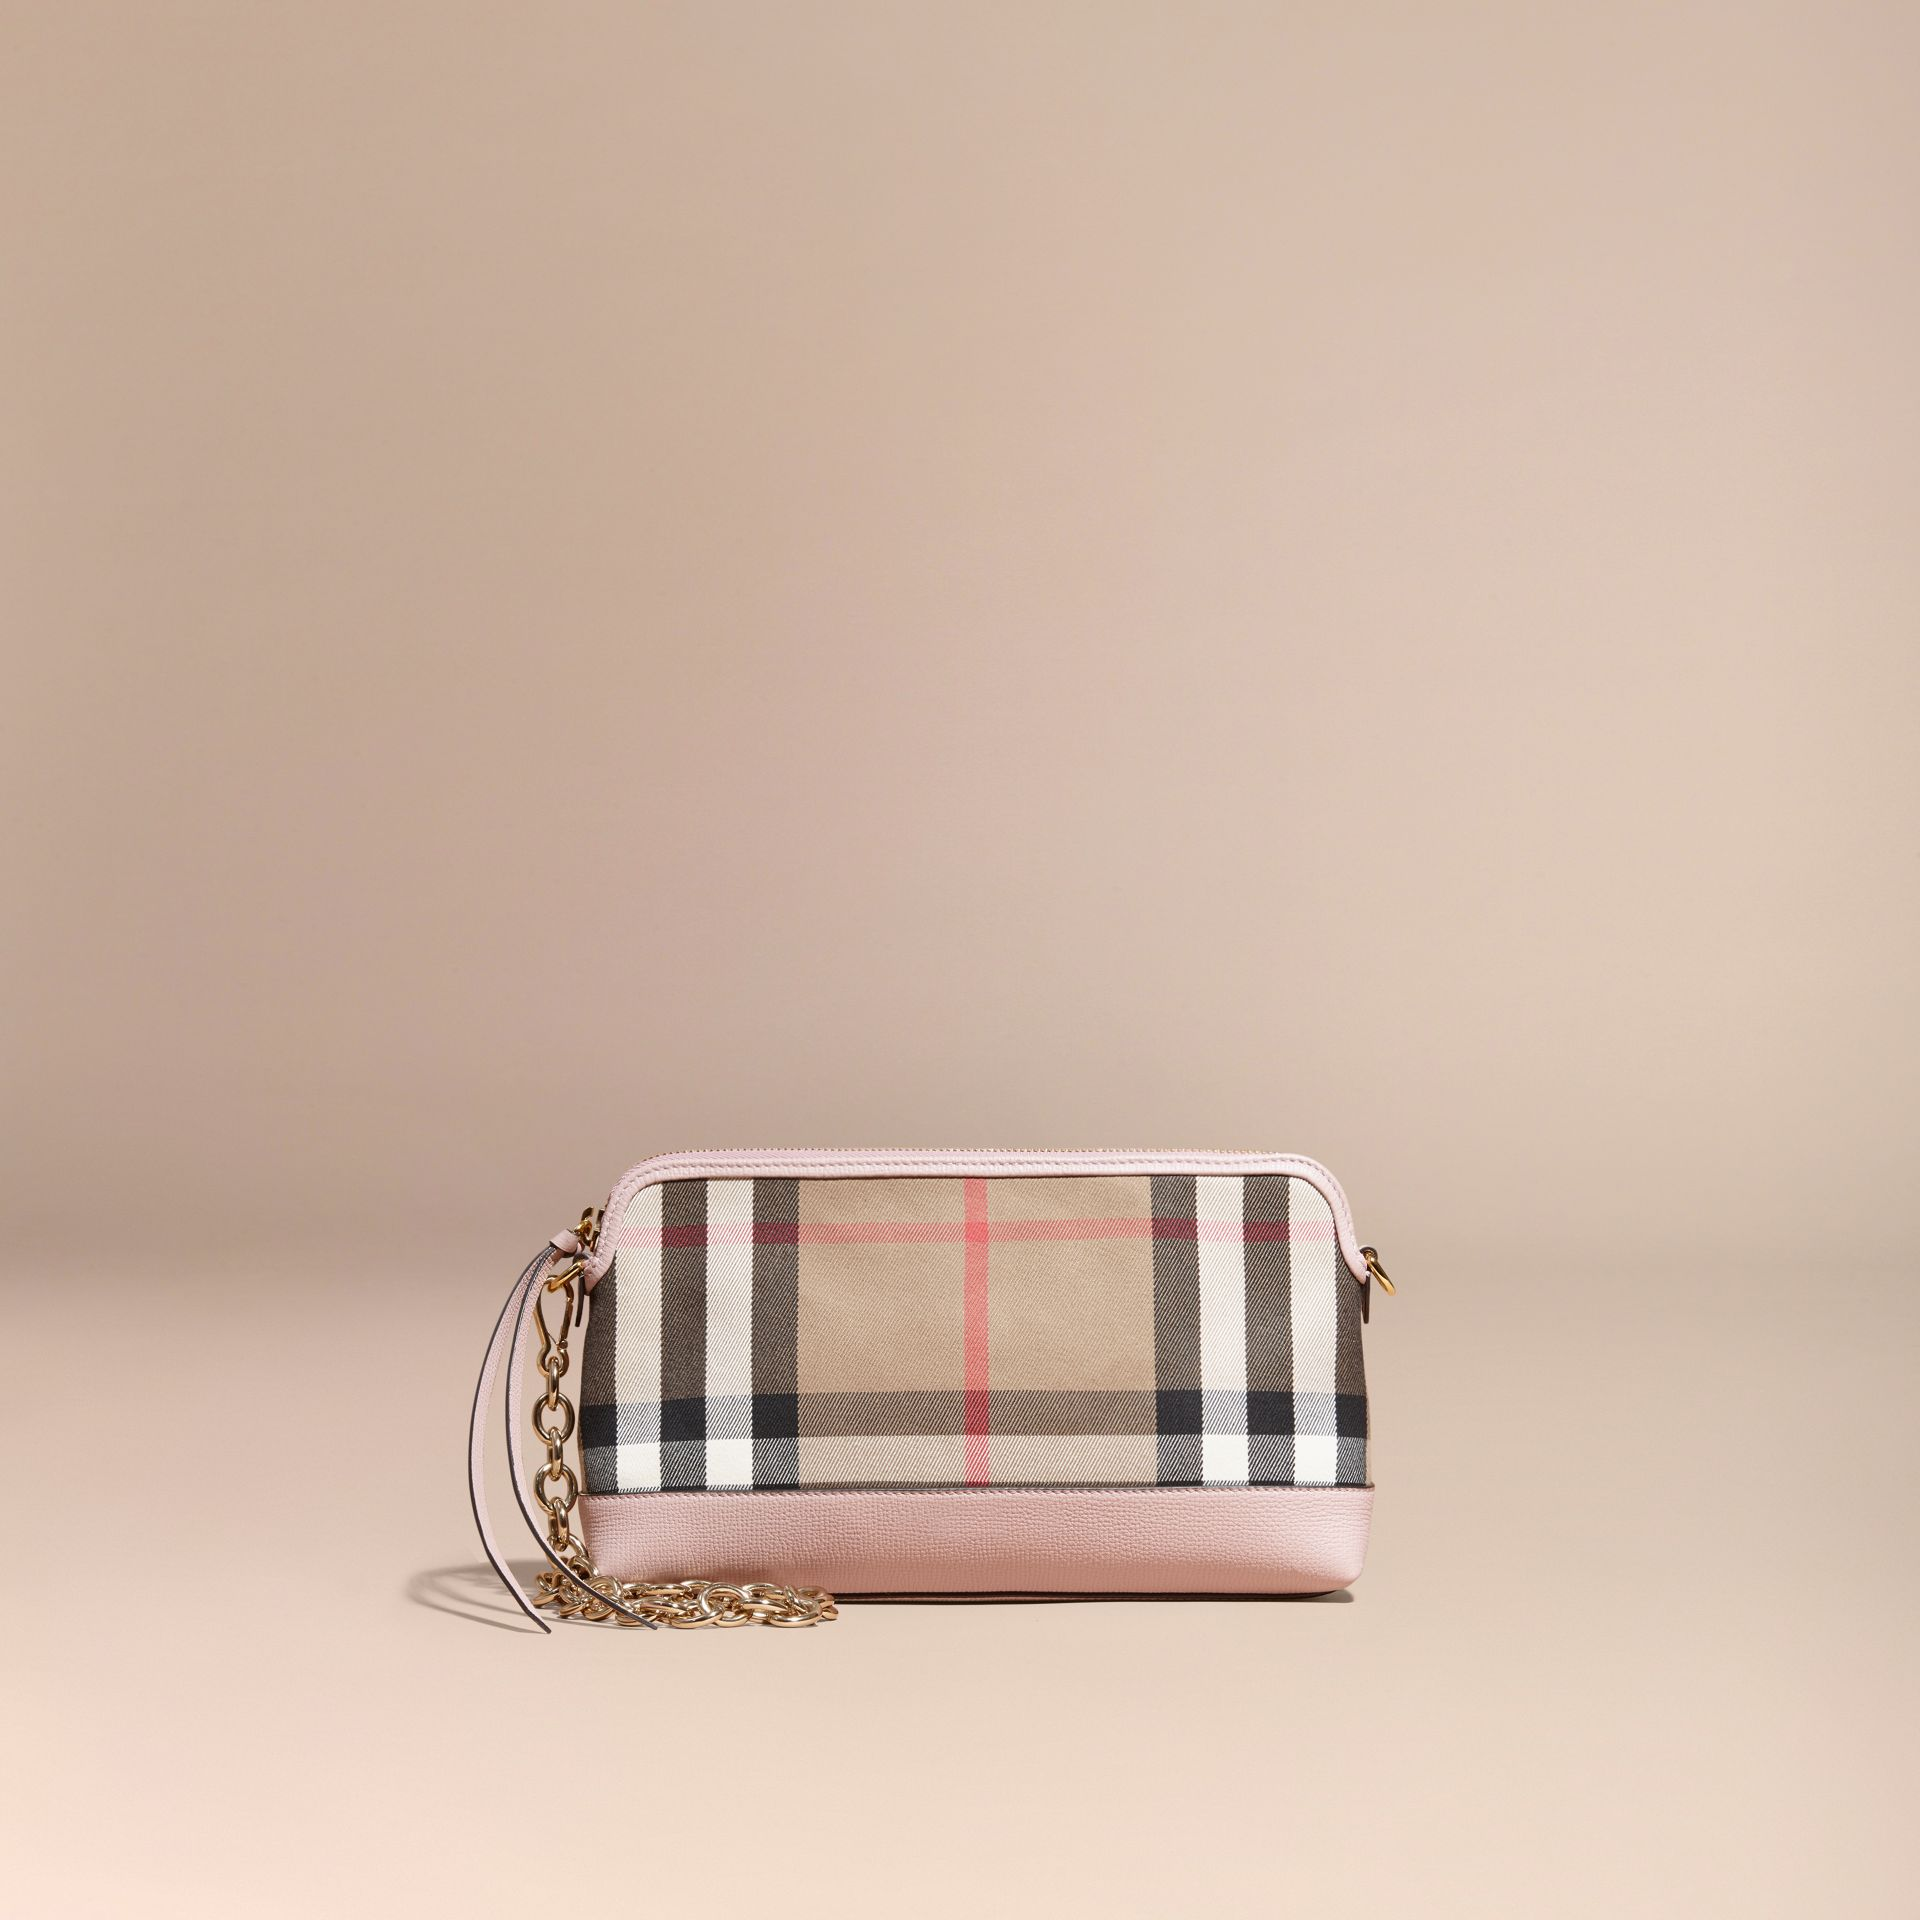 House Check and Leather Clutch Bag in Pale Orchid - Women | Burberry Hong Kong - gallery image 9